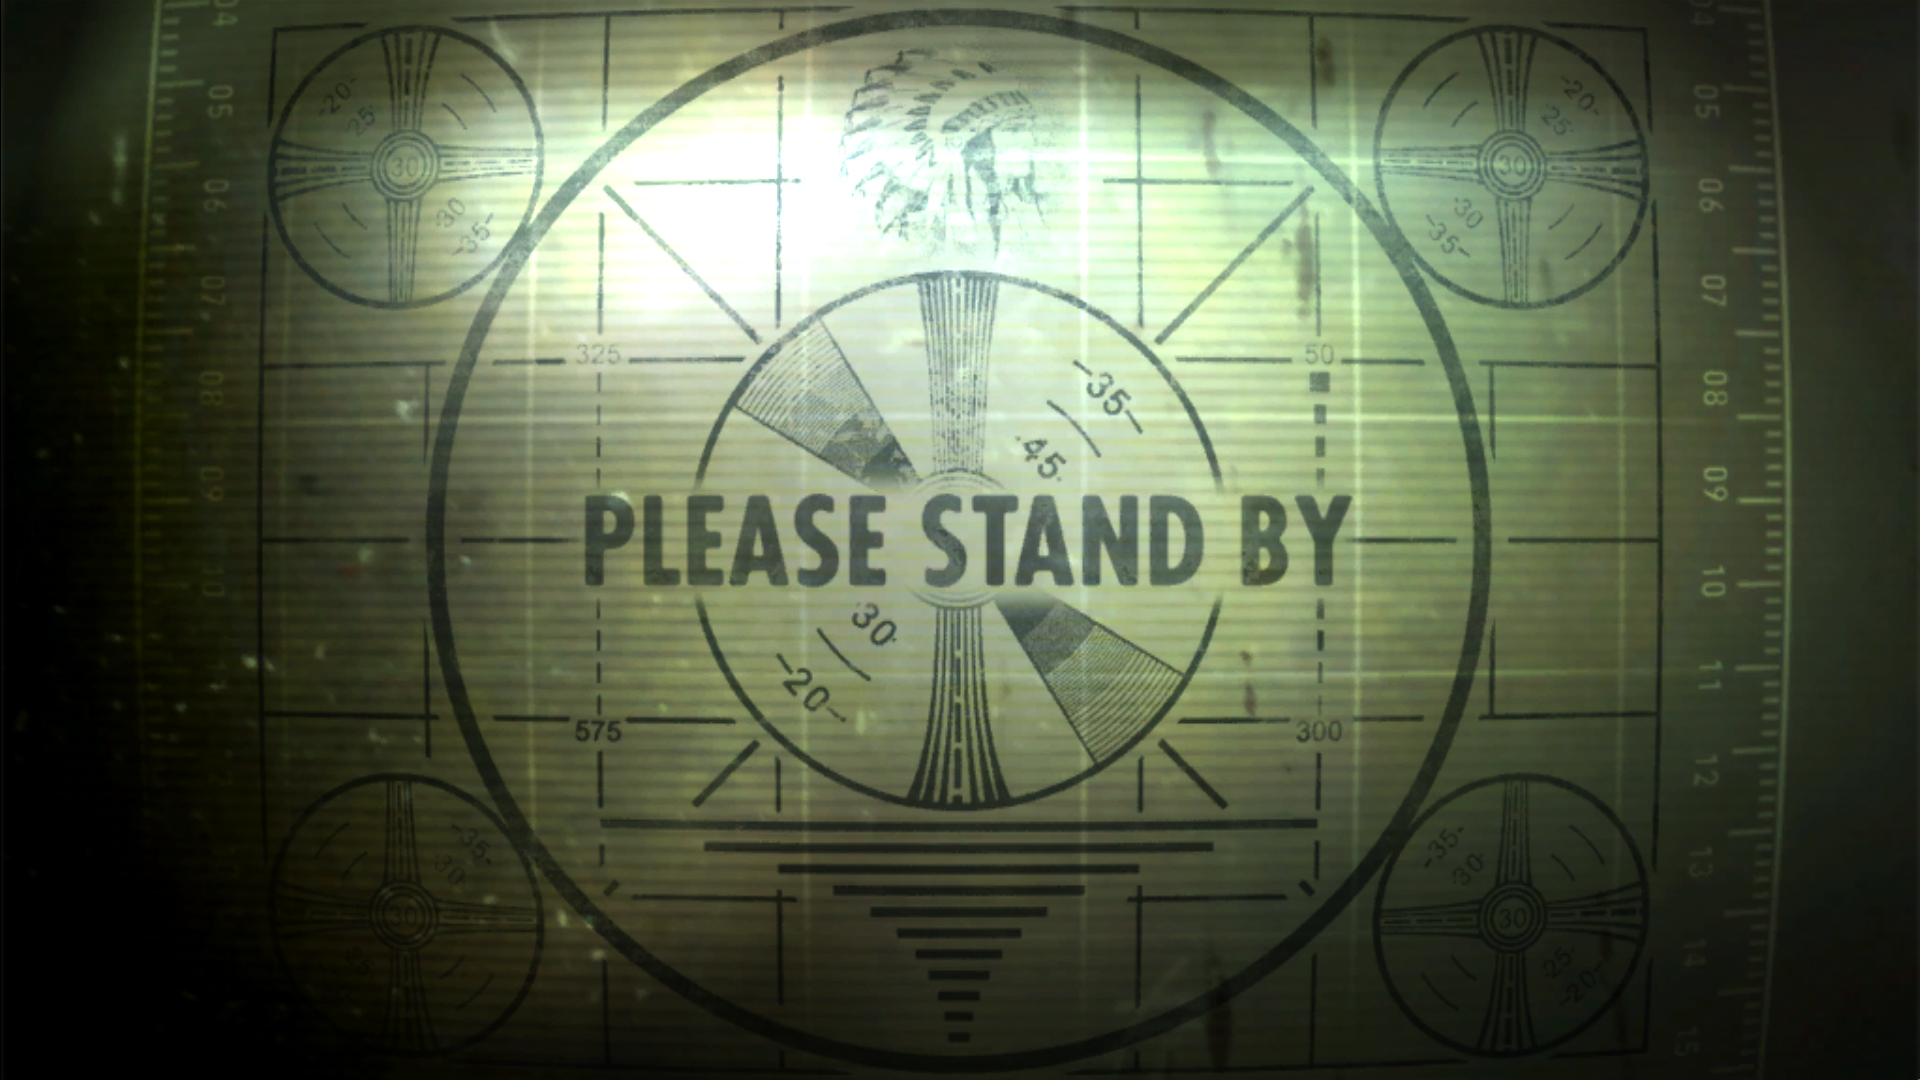 General 1920x1080 Fallout 3 test patterns vintage video games Fallout video game art numbers